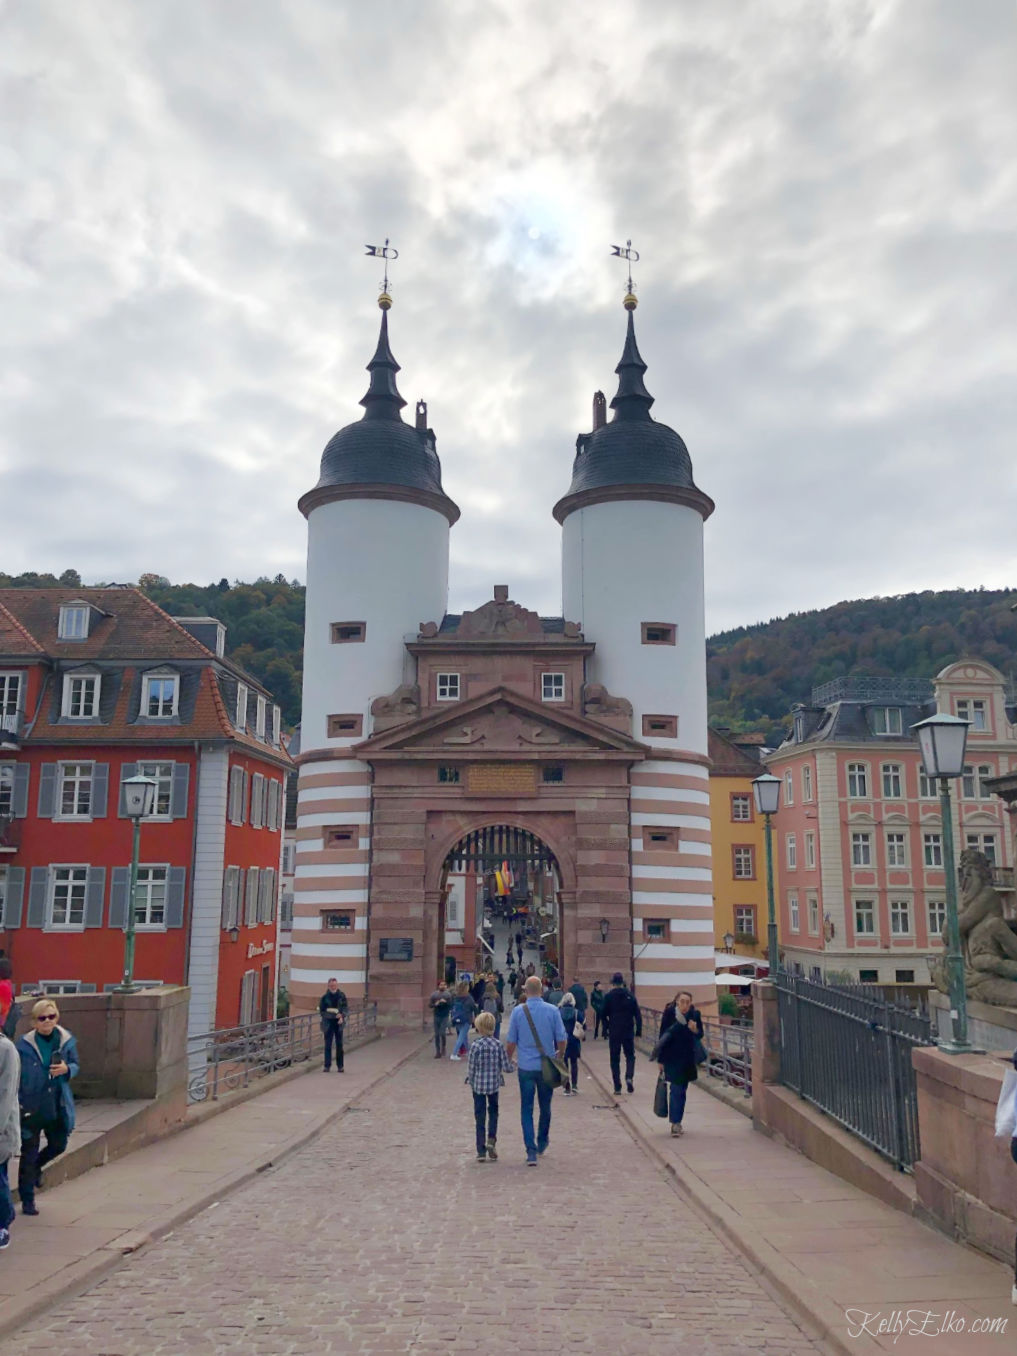 Heidelberg Germany bridge kellyelko.com #travel #travelblog #heidelberg #germany #luxurytravel #exploreeurope #rivercruise